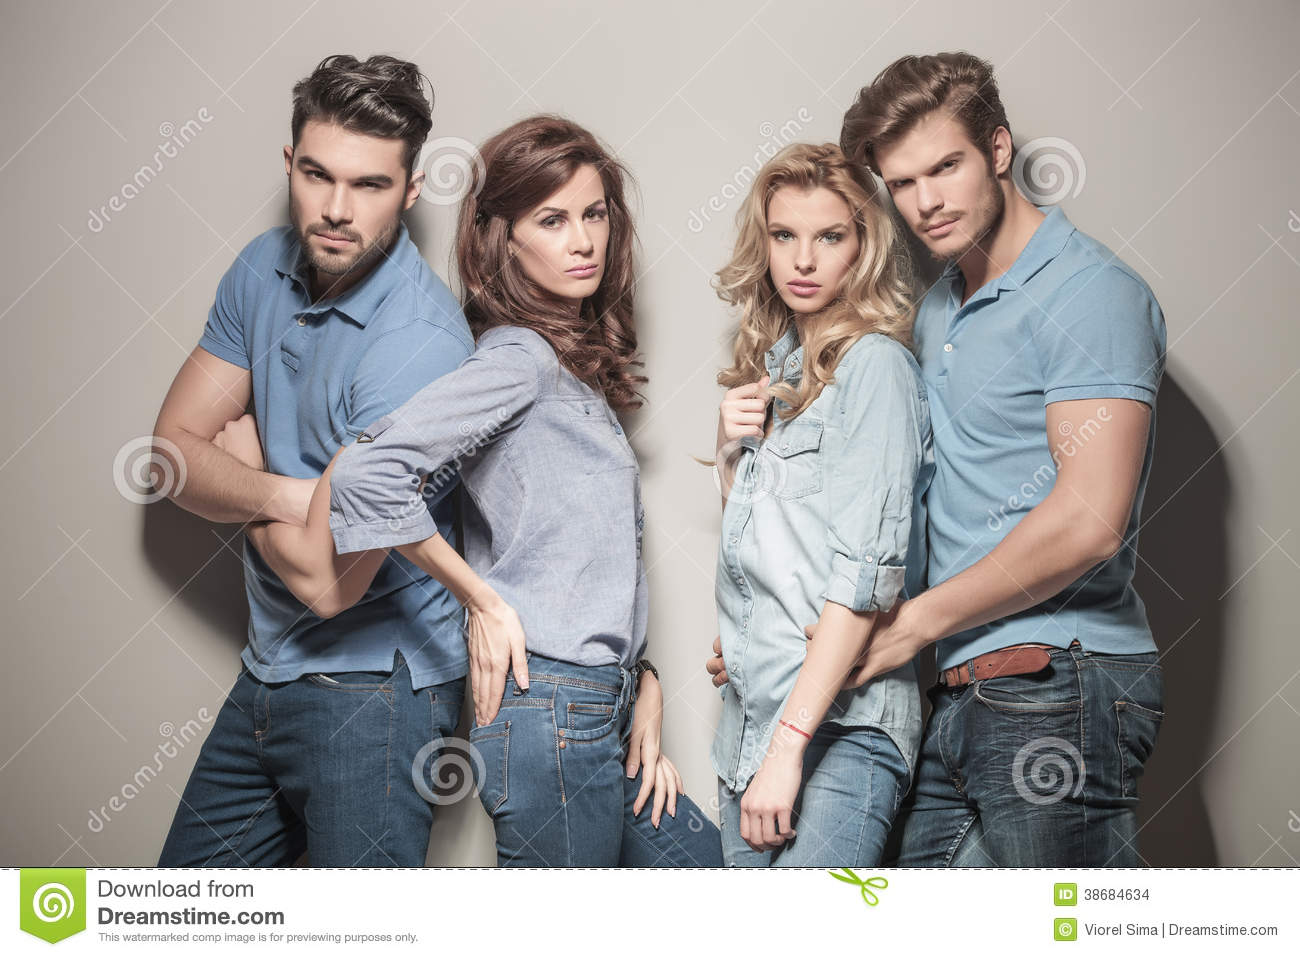 Fashion Models In Blue Jeans And Polo Shirts Stock Photo ...